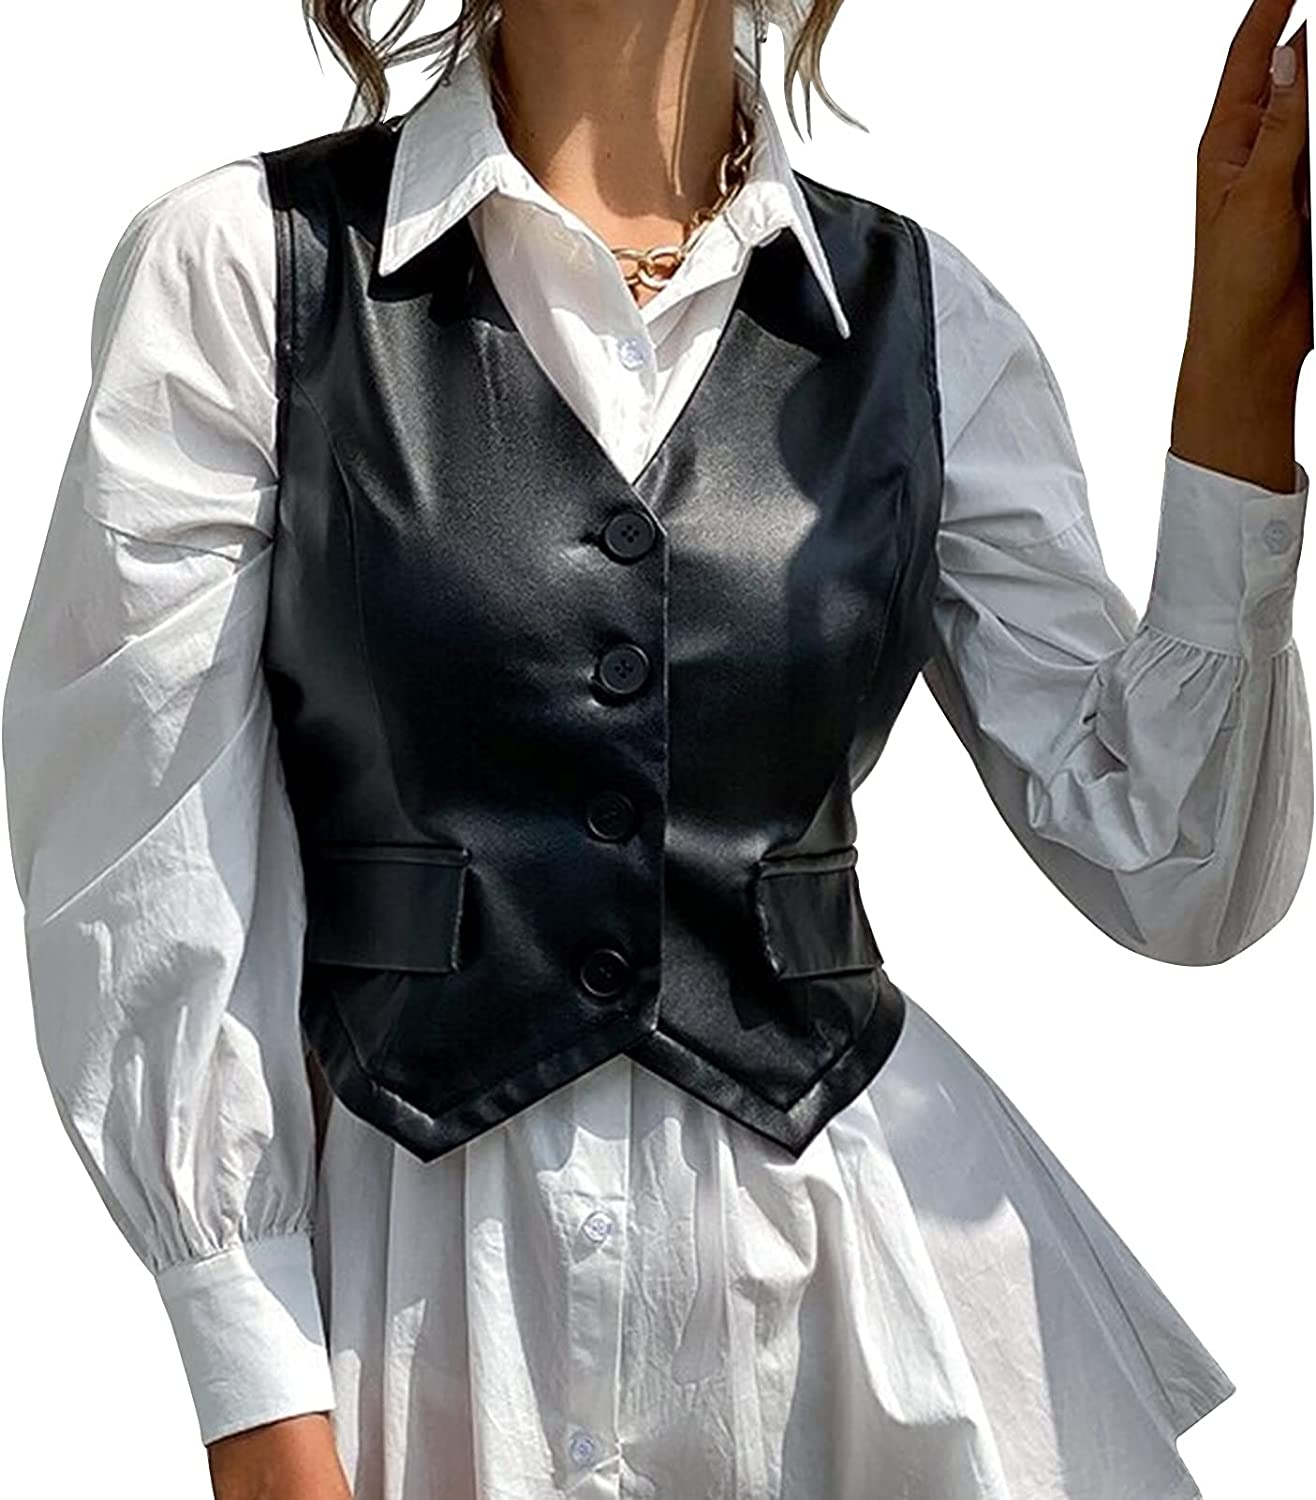 Women's Casual Jackets,PU Leather Button Front Vest Jacket Without Dress